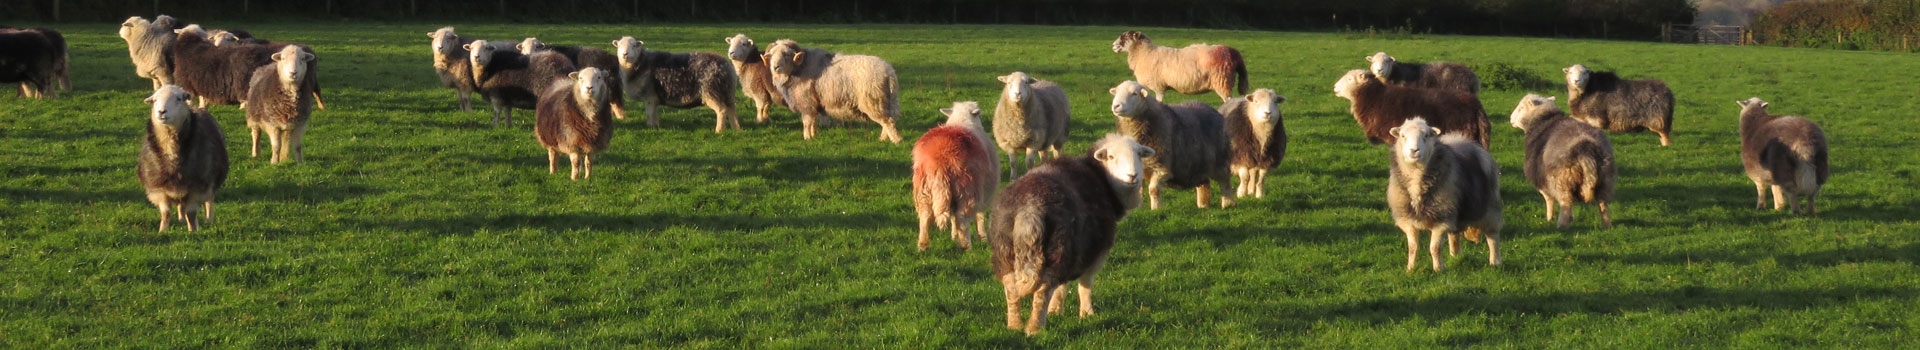 Field of Herdwick sheep at South Yeo Farm West